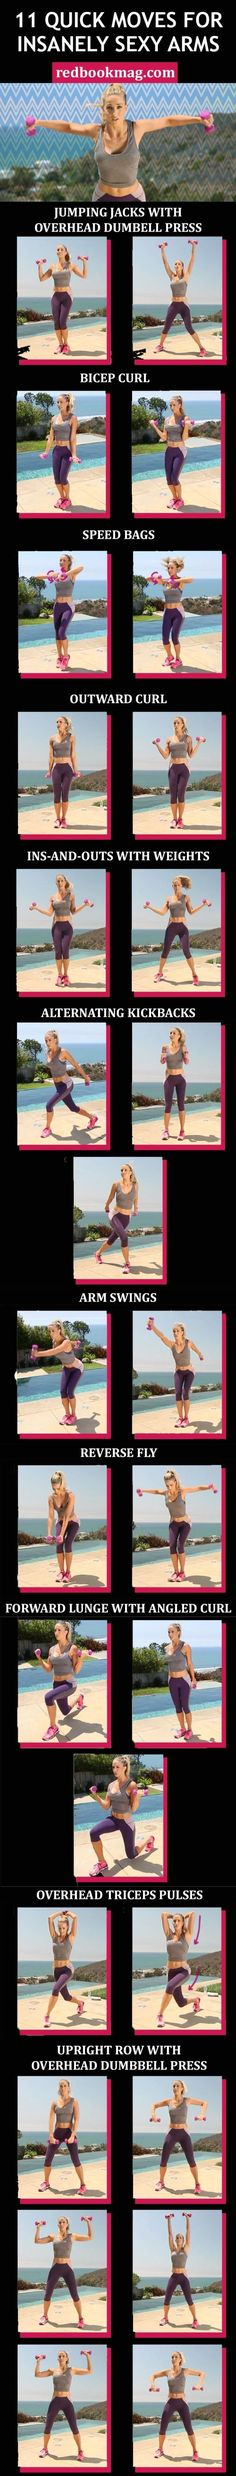 SEXY ARM WORKOUT FOR WOMEN: Grab a set of 2- to 3-pound dumbbells, and do 20 to 30 reps of each move in quick succession to tone your arms, back, chest, and legs. Repeat the entire sequence two to three times to get toned arms fast! Click through for the entire arm workout with weights that you can do at home or at the gym. by sonia